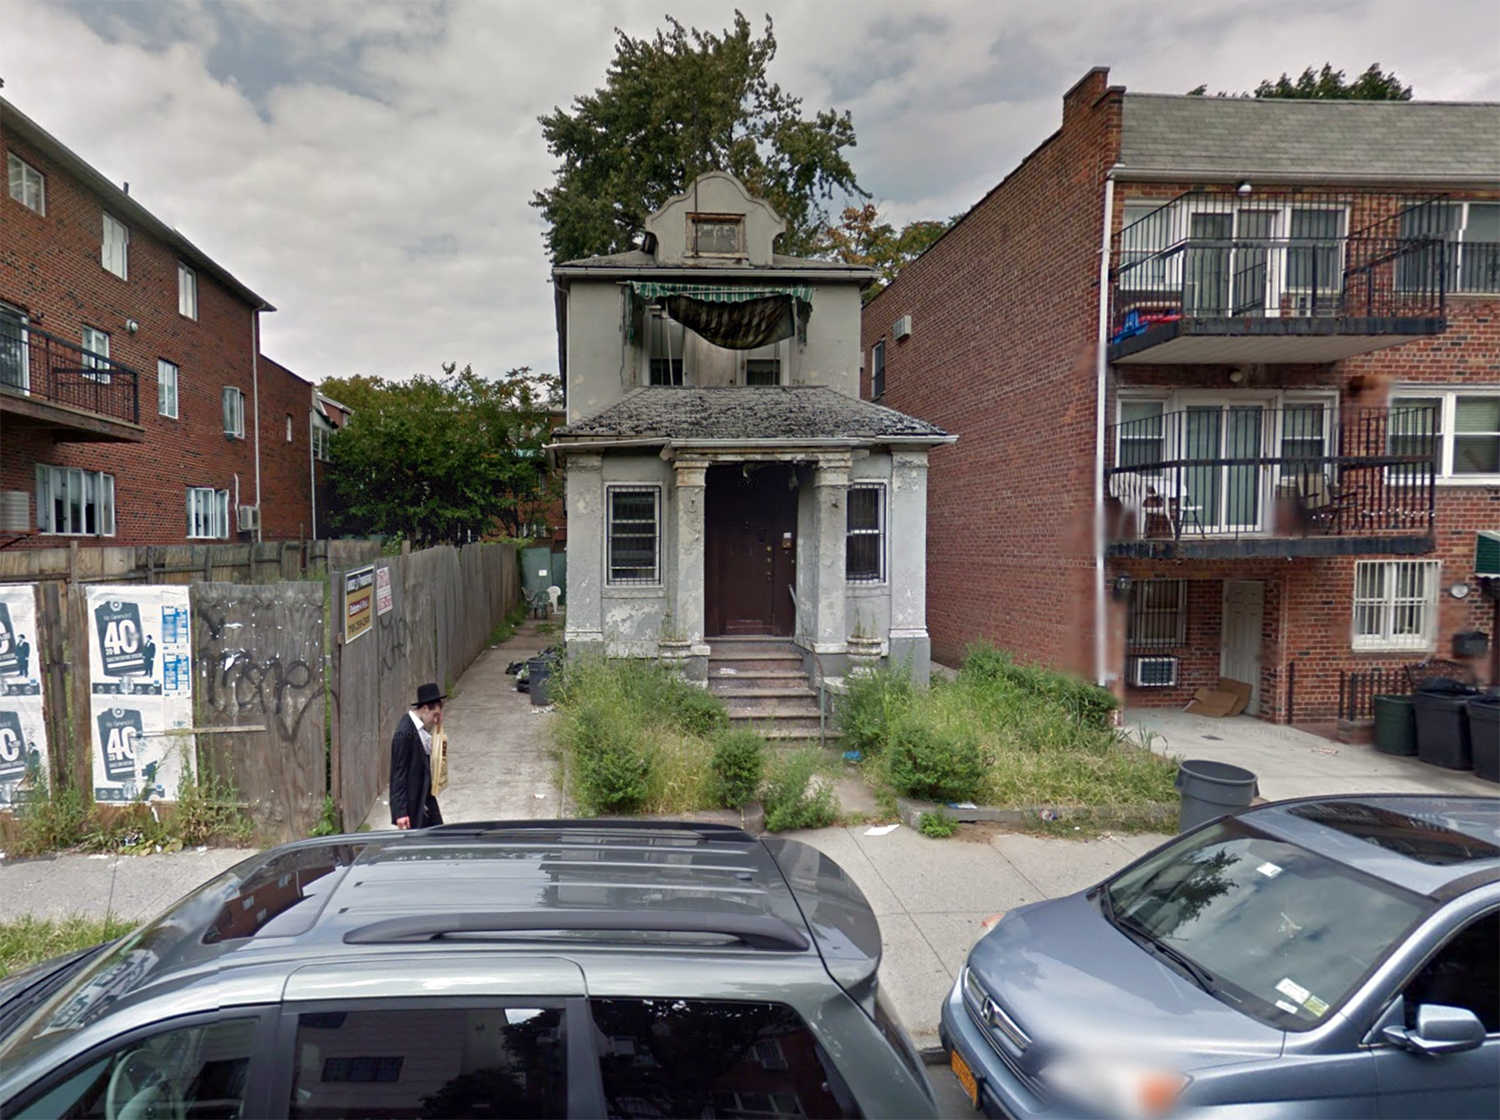 1559 51st Street. Via Google Maps.